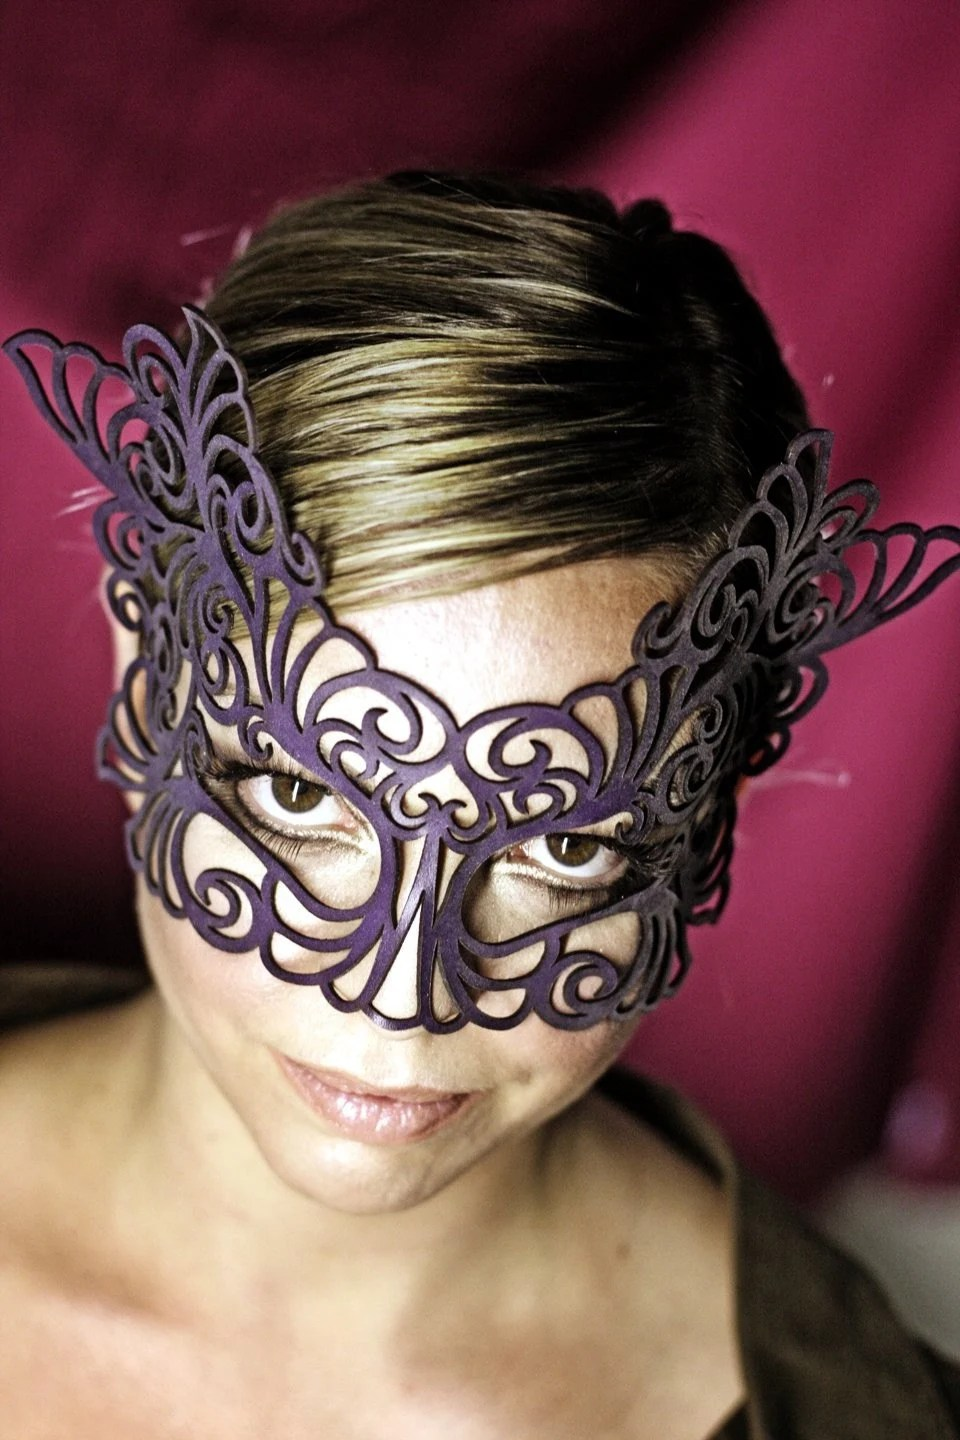 Rococo lacy mask in violet leather